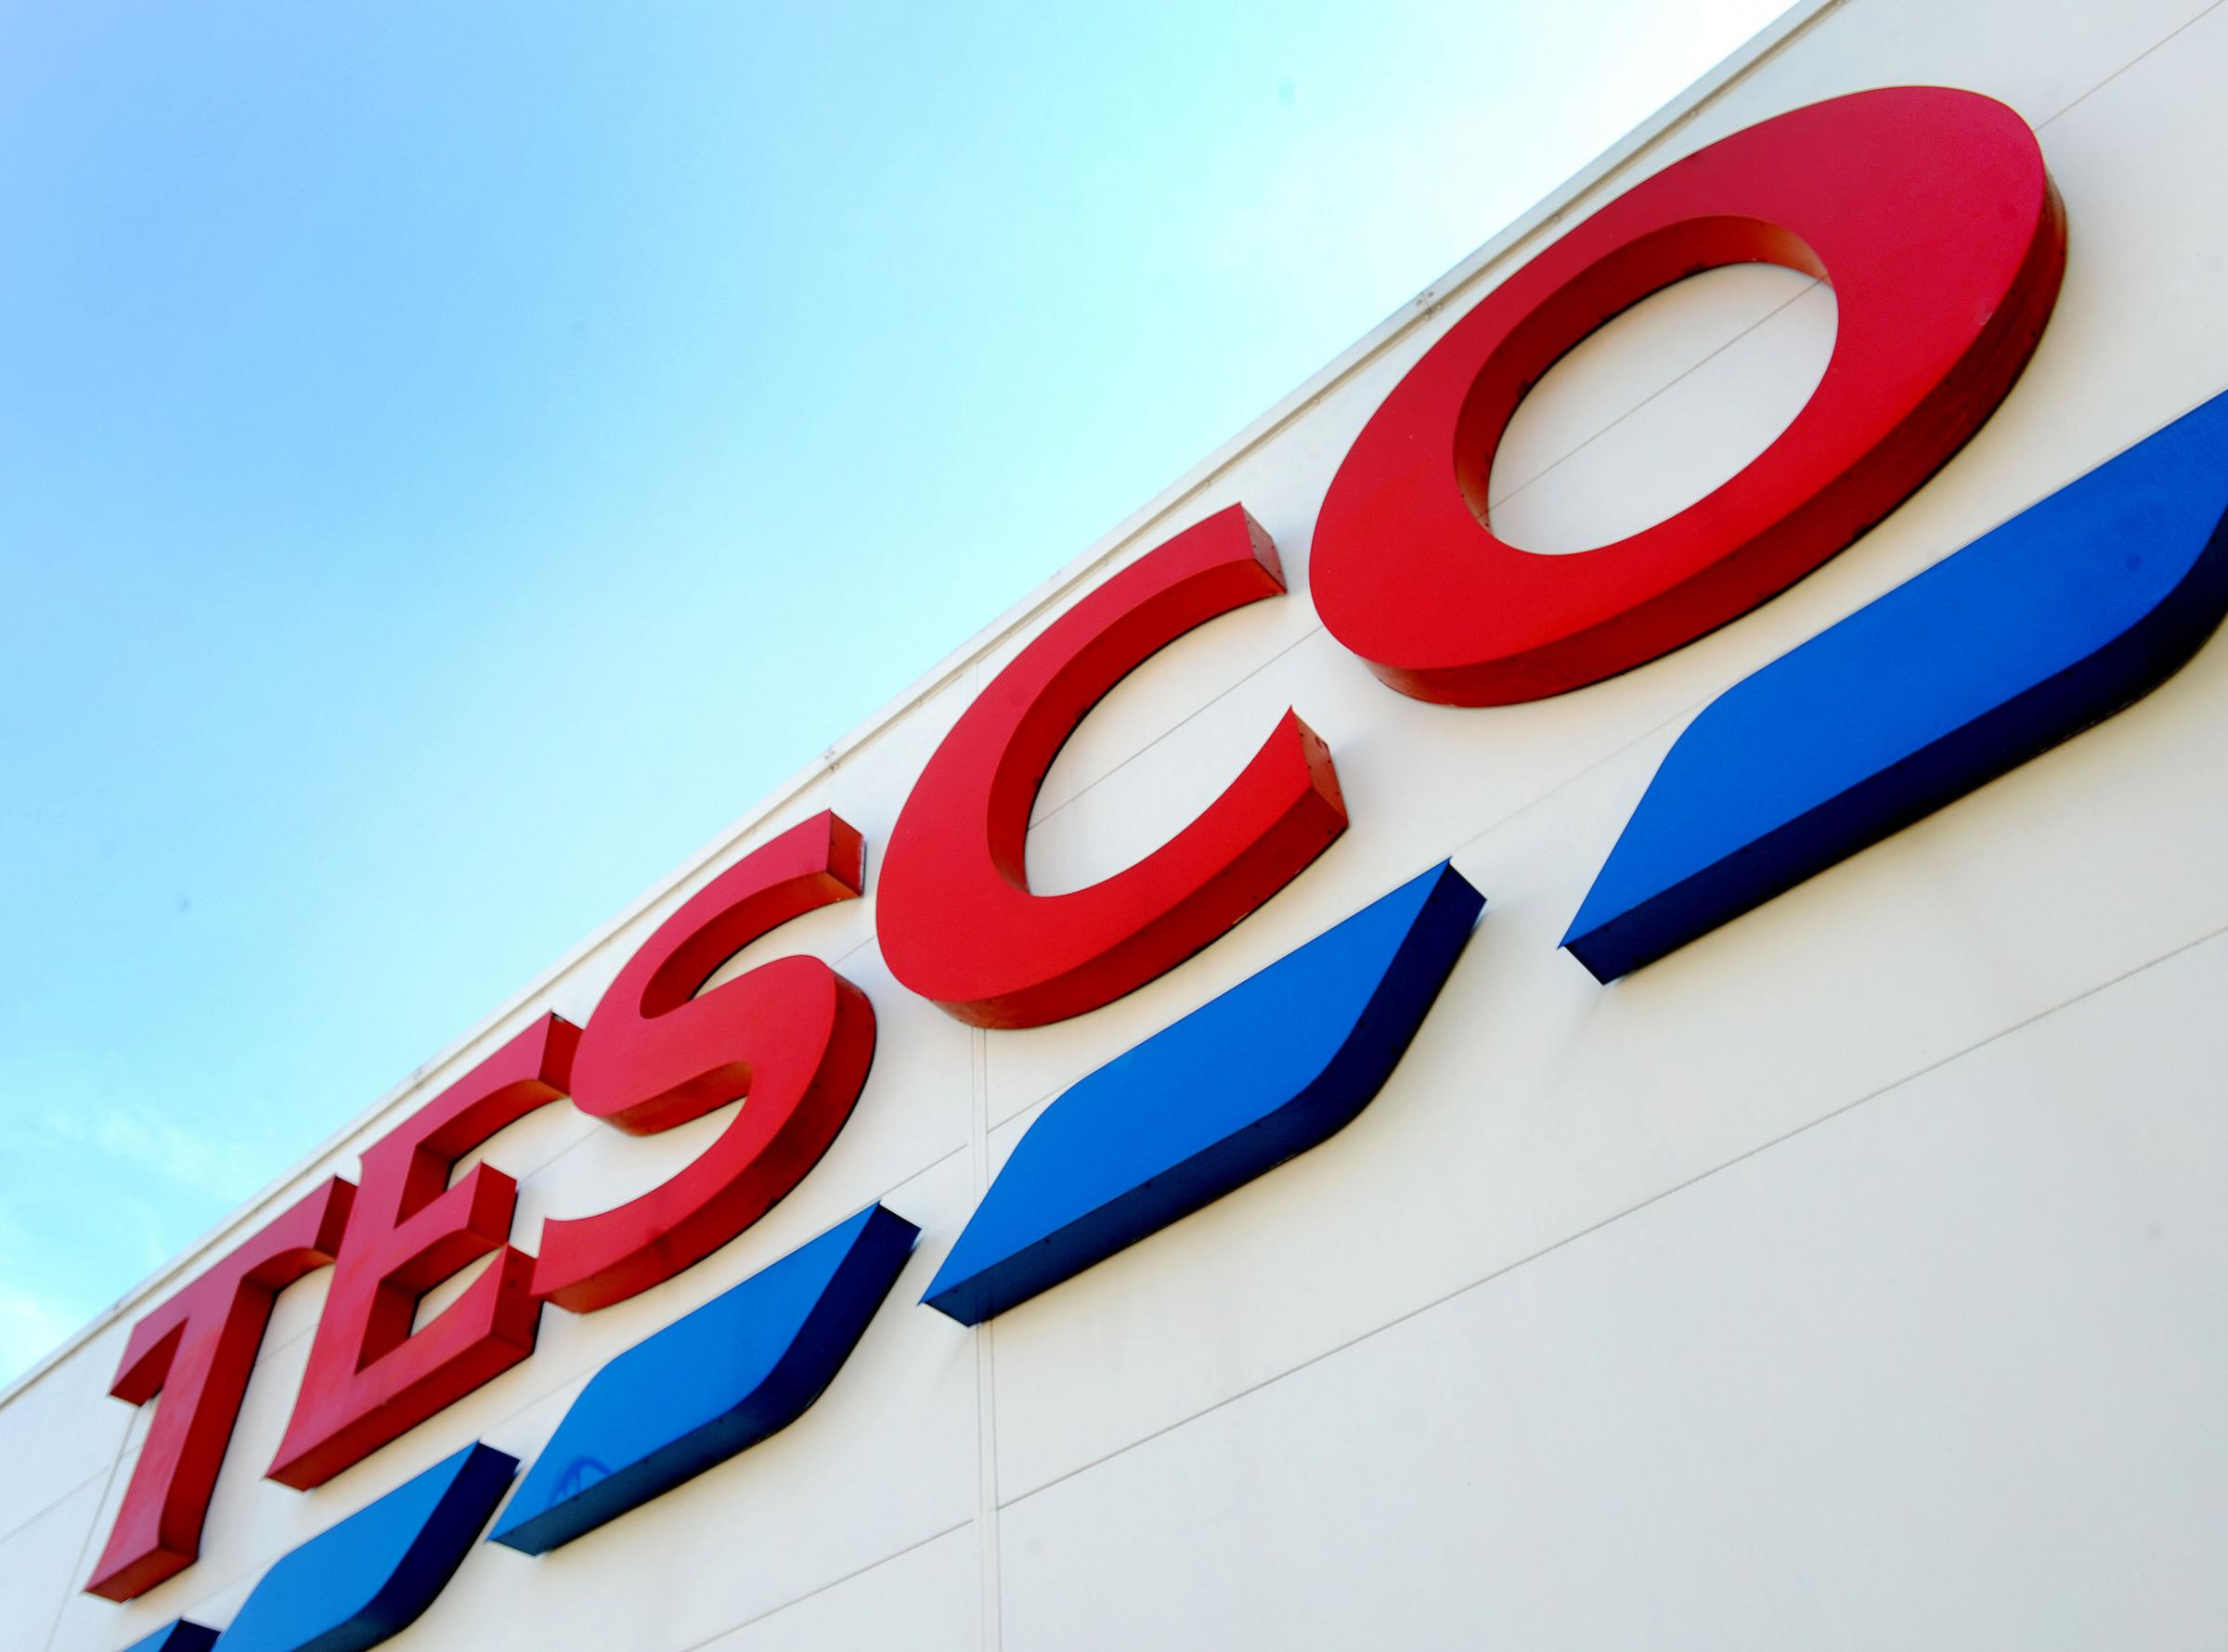 Tesco stockpiling for no-deal Brexit, admits chief